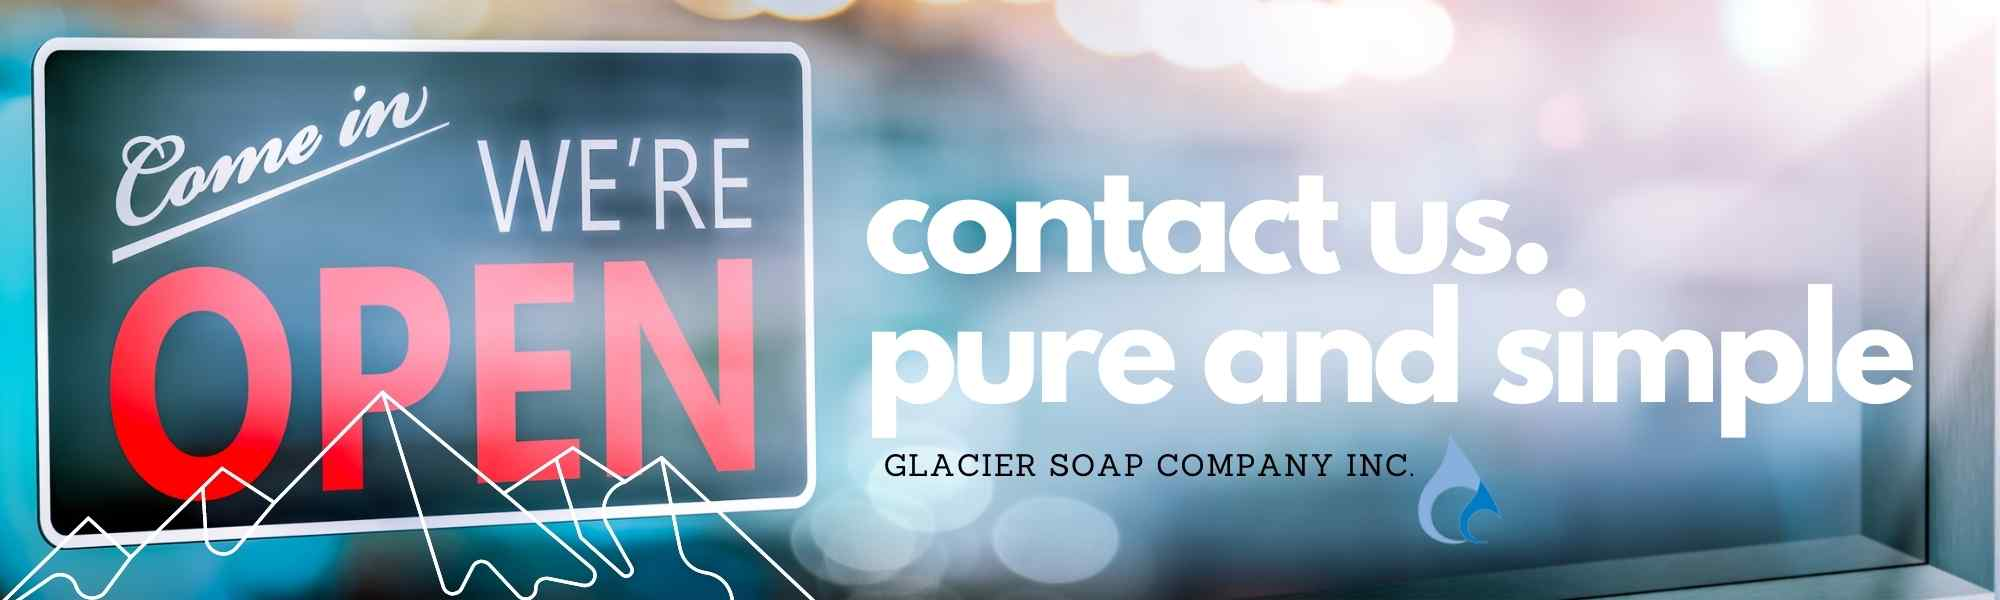 contact us about skincare